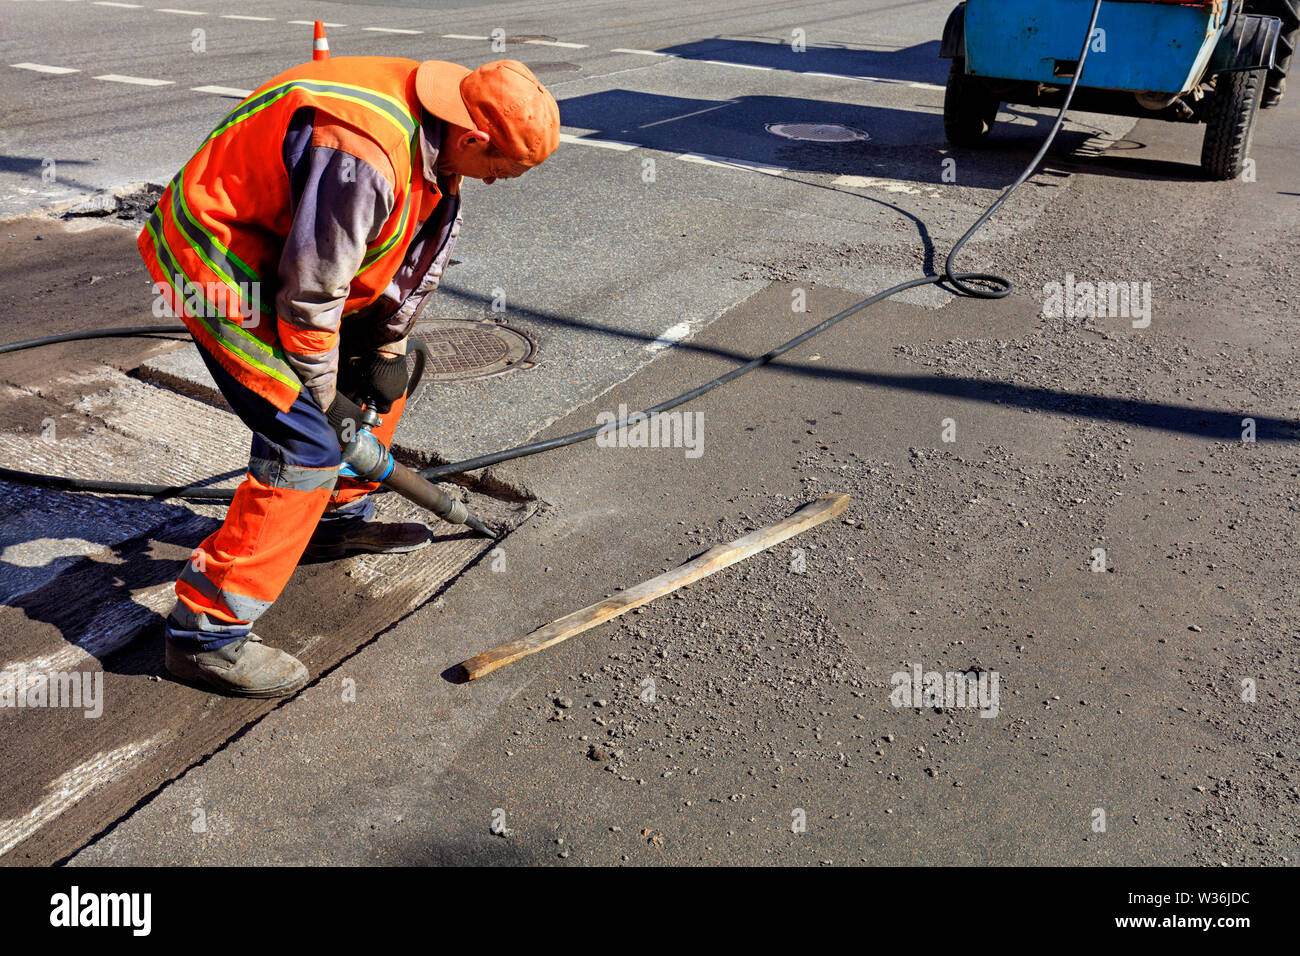 A road maintenance worker removes old asphalt with a pneumatic jackhammer during road construction. - Stock Image